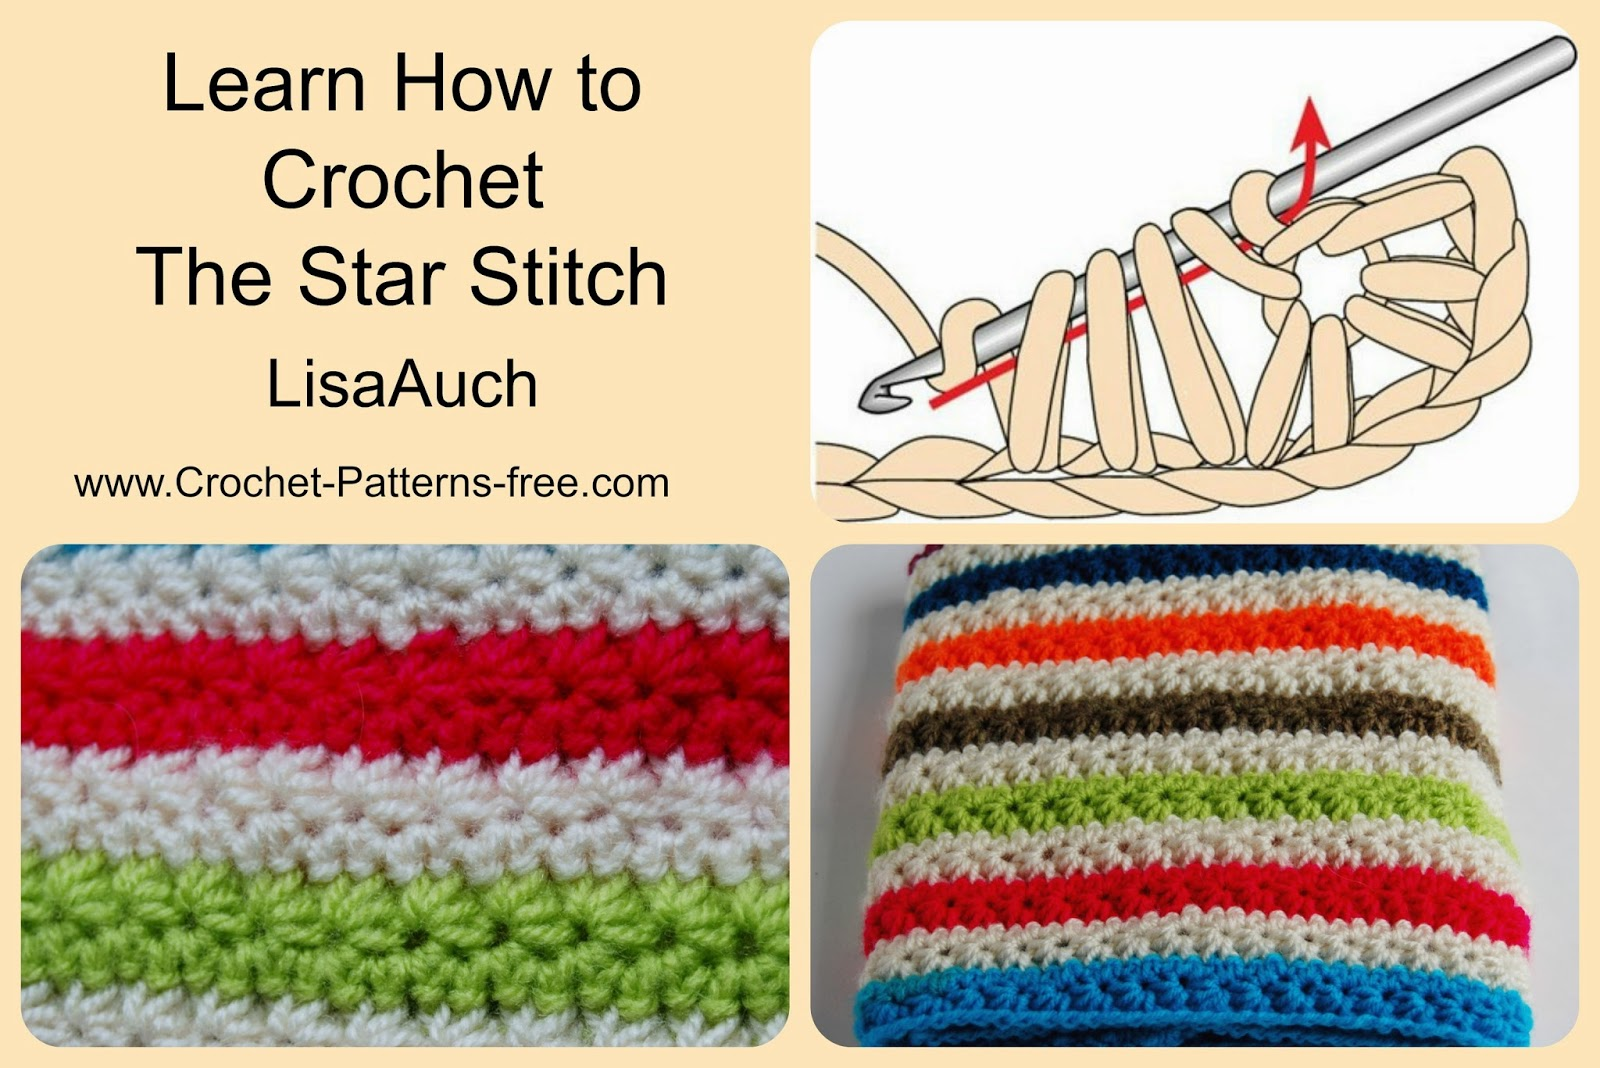 How to crochet the star stitch and crochet a warm cosy blanket how to crochet the star daisy stitch free crochet patterns learn how to croche bankloansurffo Gallery